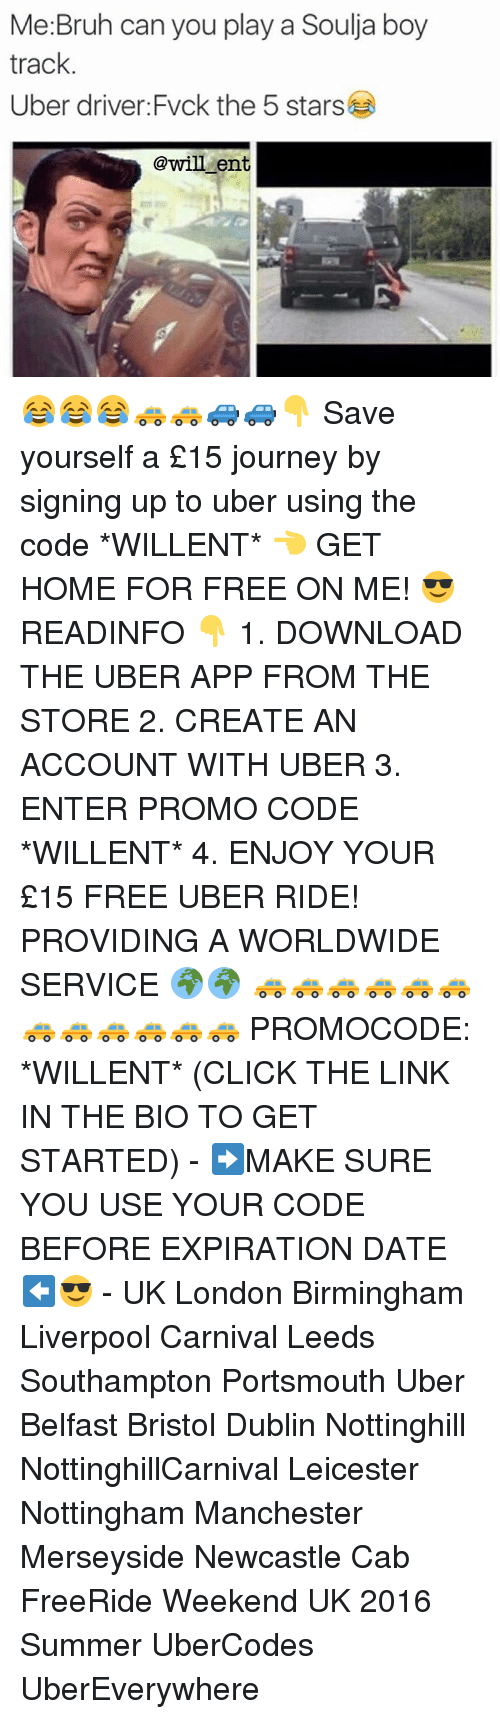 Memes, Soulja Boy, and Uber Driver: Me Bruh can you play a Soulja boy  track  Uber driver Fvck the 5 stars  @will ent. 😂😂😂🚕🚕🚙🚙👇 Save yourself a £15 journey by signing up to uber using the code *WILLENT* 👈 GET HOME FOR FREE ON ME! 😎 READINFO 👇 1. DOWNLOAD THE UBER APP FROM THE STORE 2. CREATE AN ACCOUNT WITH UBER 3. ENTER PROMO CODE *WILLENT* 4. ENJOY YOUR £15 FREE UBER RIDE! PROVIDING A WORLDWIDE SERVICE 🌍🌍 🚕🚕🚕🚕🚕🚕🚕🚕🚕🚕🚕🚕 PROMOCODE: *WILLENT* (CLICK THE LINK IN THE BIO TO GET STARTED) - ➡️MAKE SURE YOU USE YOUR CODE BEFORE EXPIRATION DATE ⬅️😎 - UK London Birmingham Liverpool Carnival Leeds Southampton Portsmouth Uber Belfast Bristol Dublin Nottinghill NottinghillCarnival Leicester Nottingham Manchester Merseyside Newcastle Cab FreeRide Weekend UK 2016 Summer UberCodes UberEverywhere